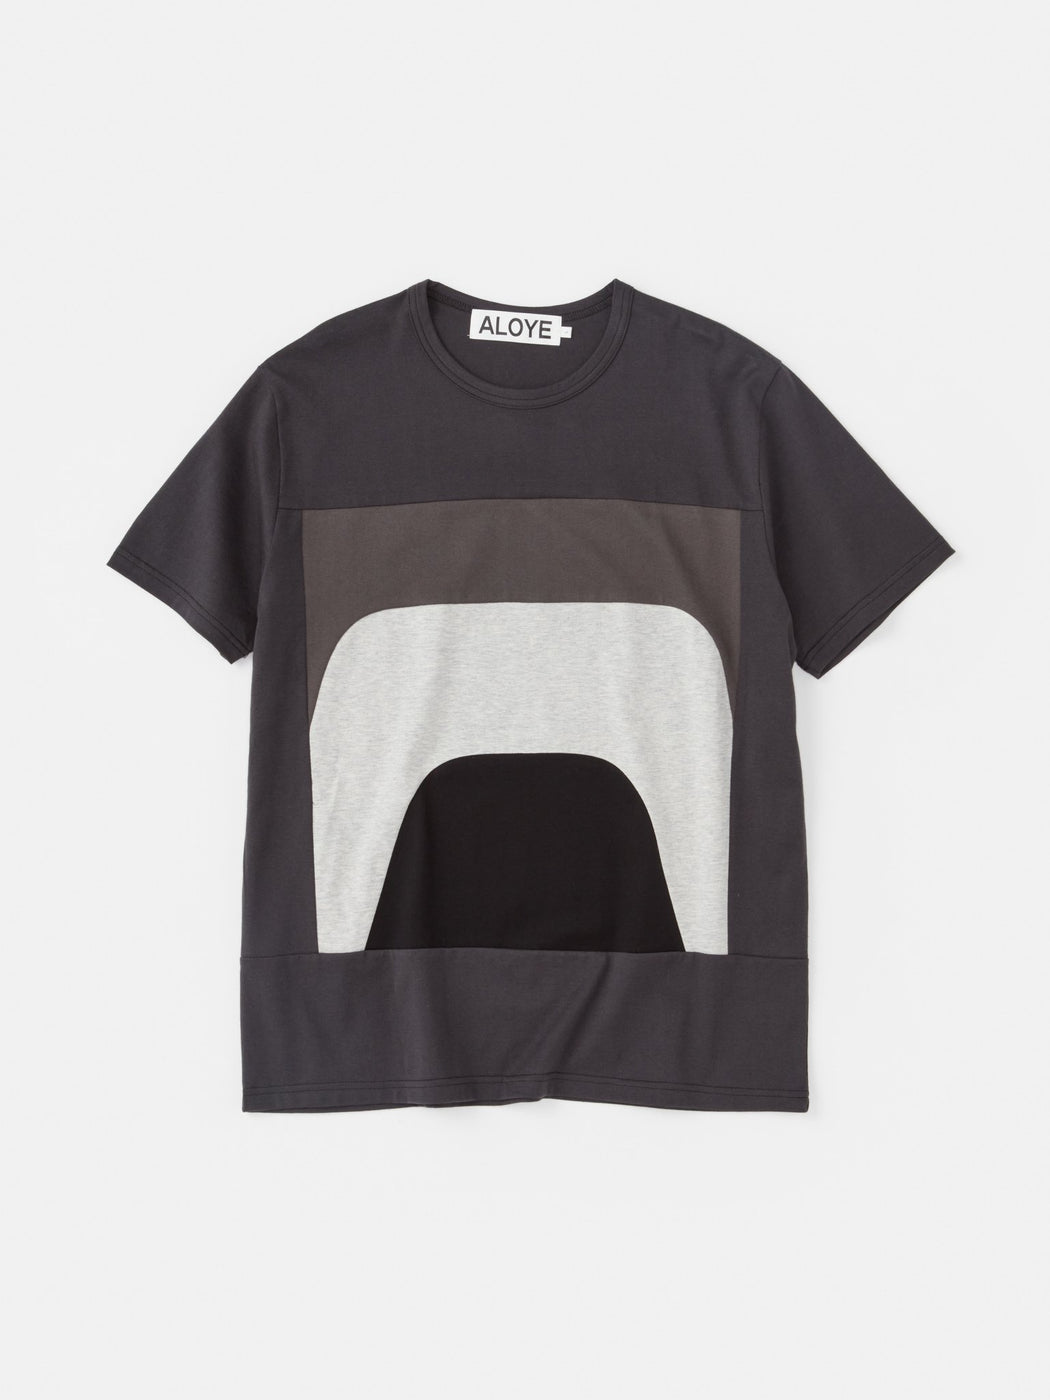 ALOYE Color Blocks Short Sleeve T-shirt Dark Gray